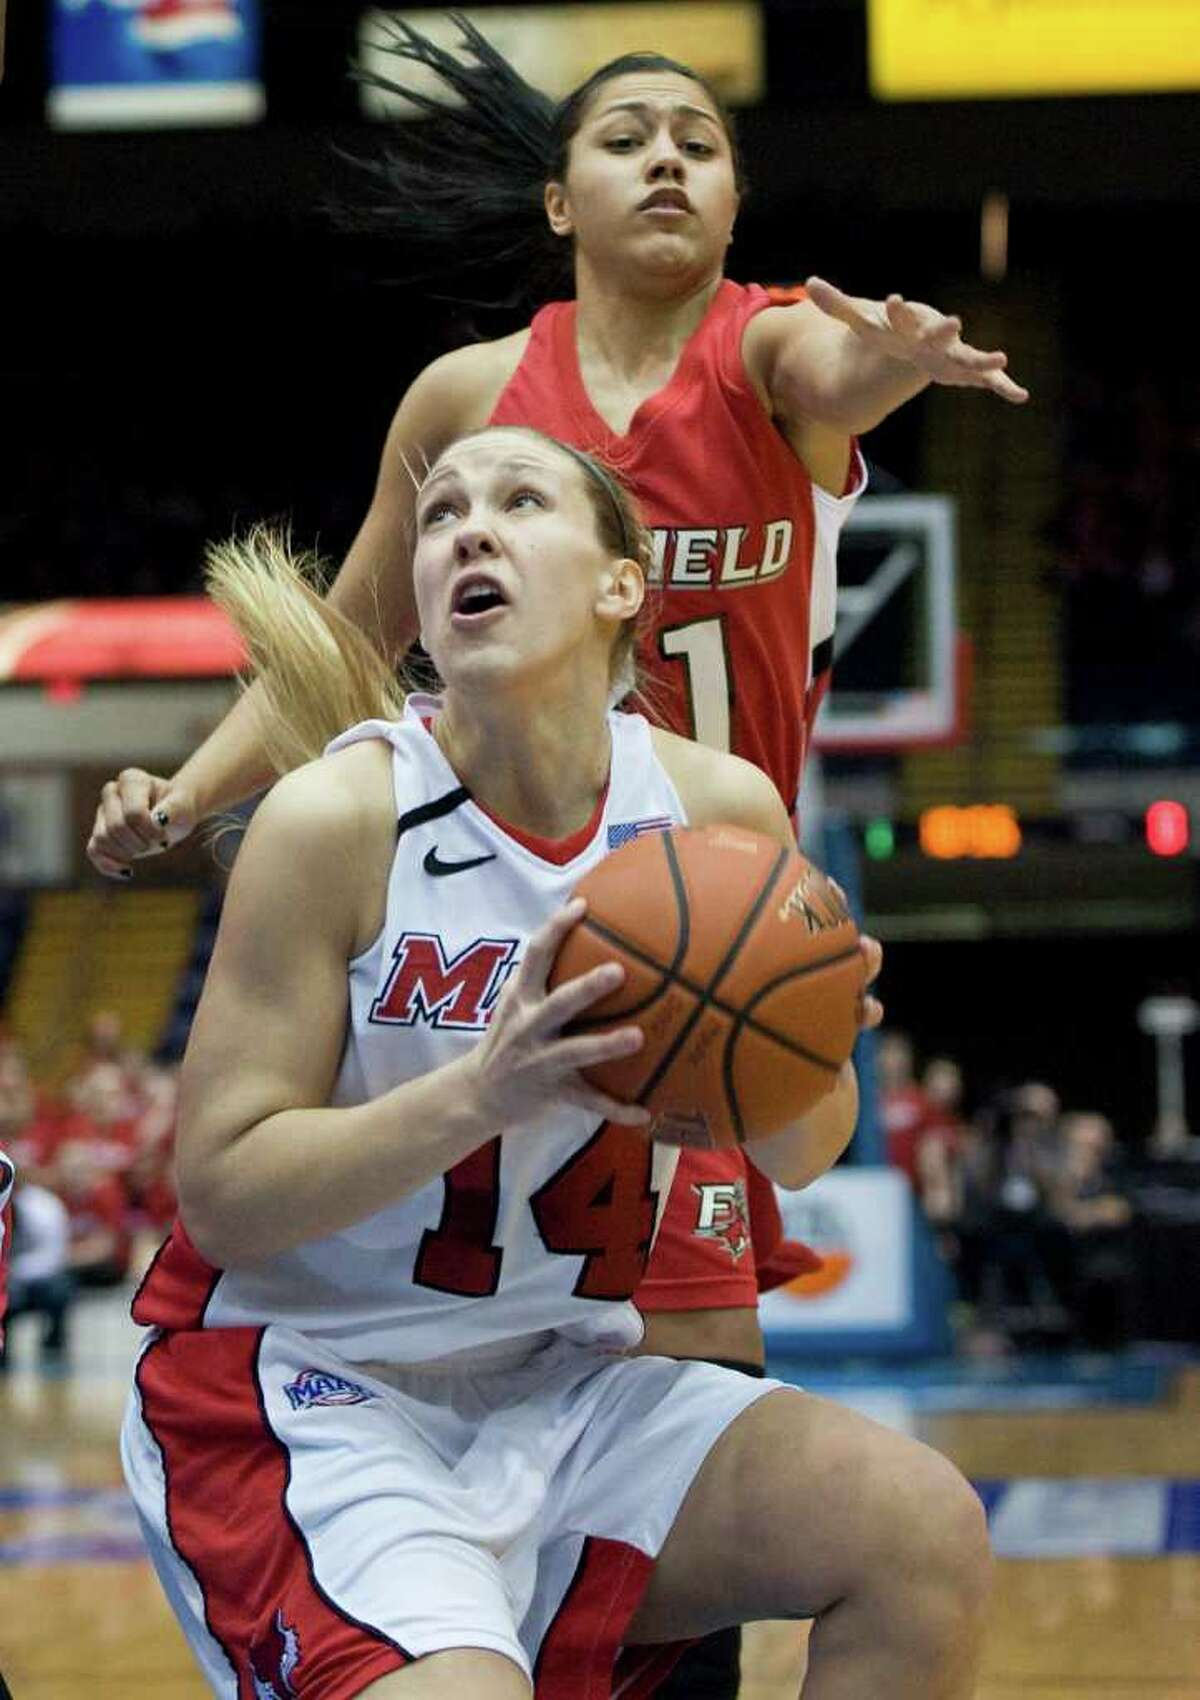 Marist's Casey Dulin, bottom, is guarded by Fairfield's Desiree Pina, top in the first half of an NCAA college basketball game for the championship of the Metro Atlantic Athletic conference women's tournament in Springfield, Mass., Monday, March 5, 2012. (AP Photo/Jessica Hill)